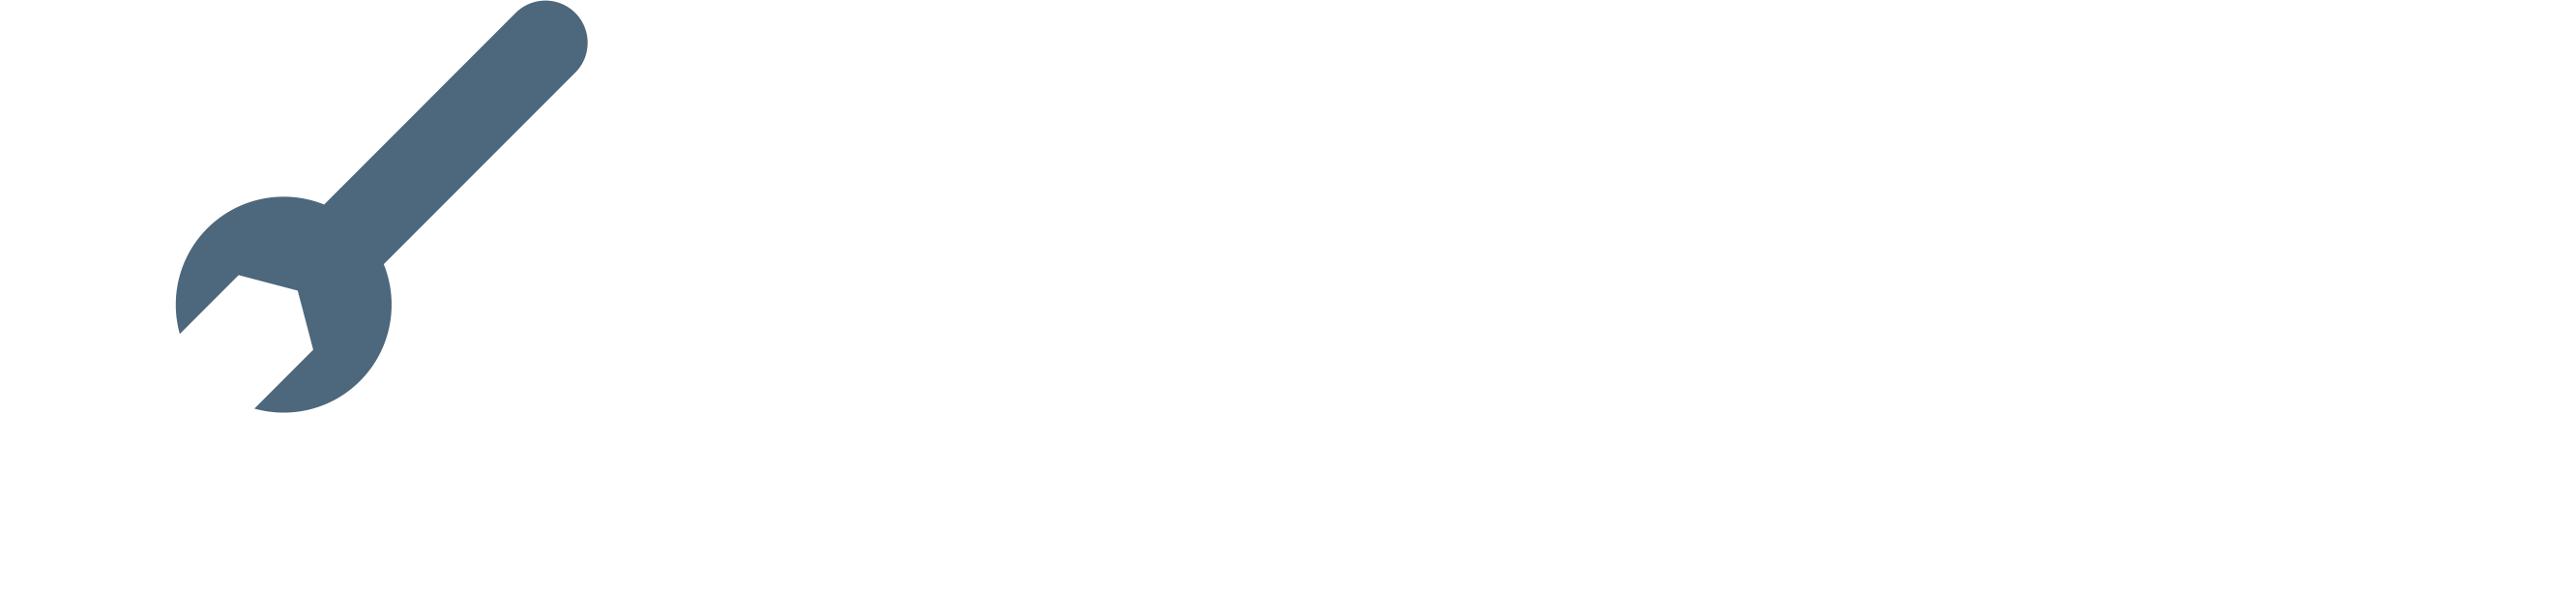 Service_Select_Logo.png